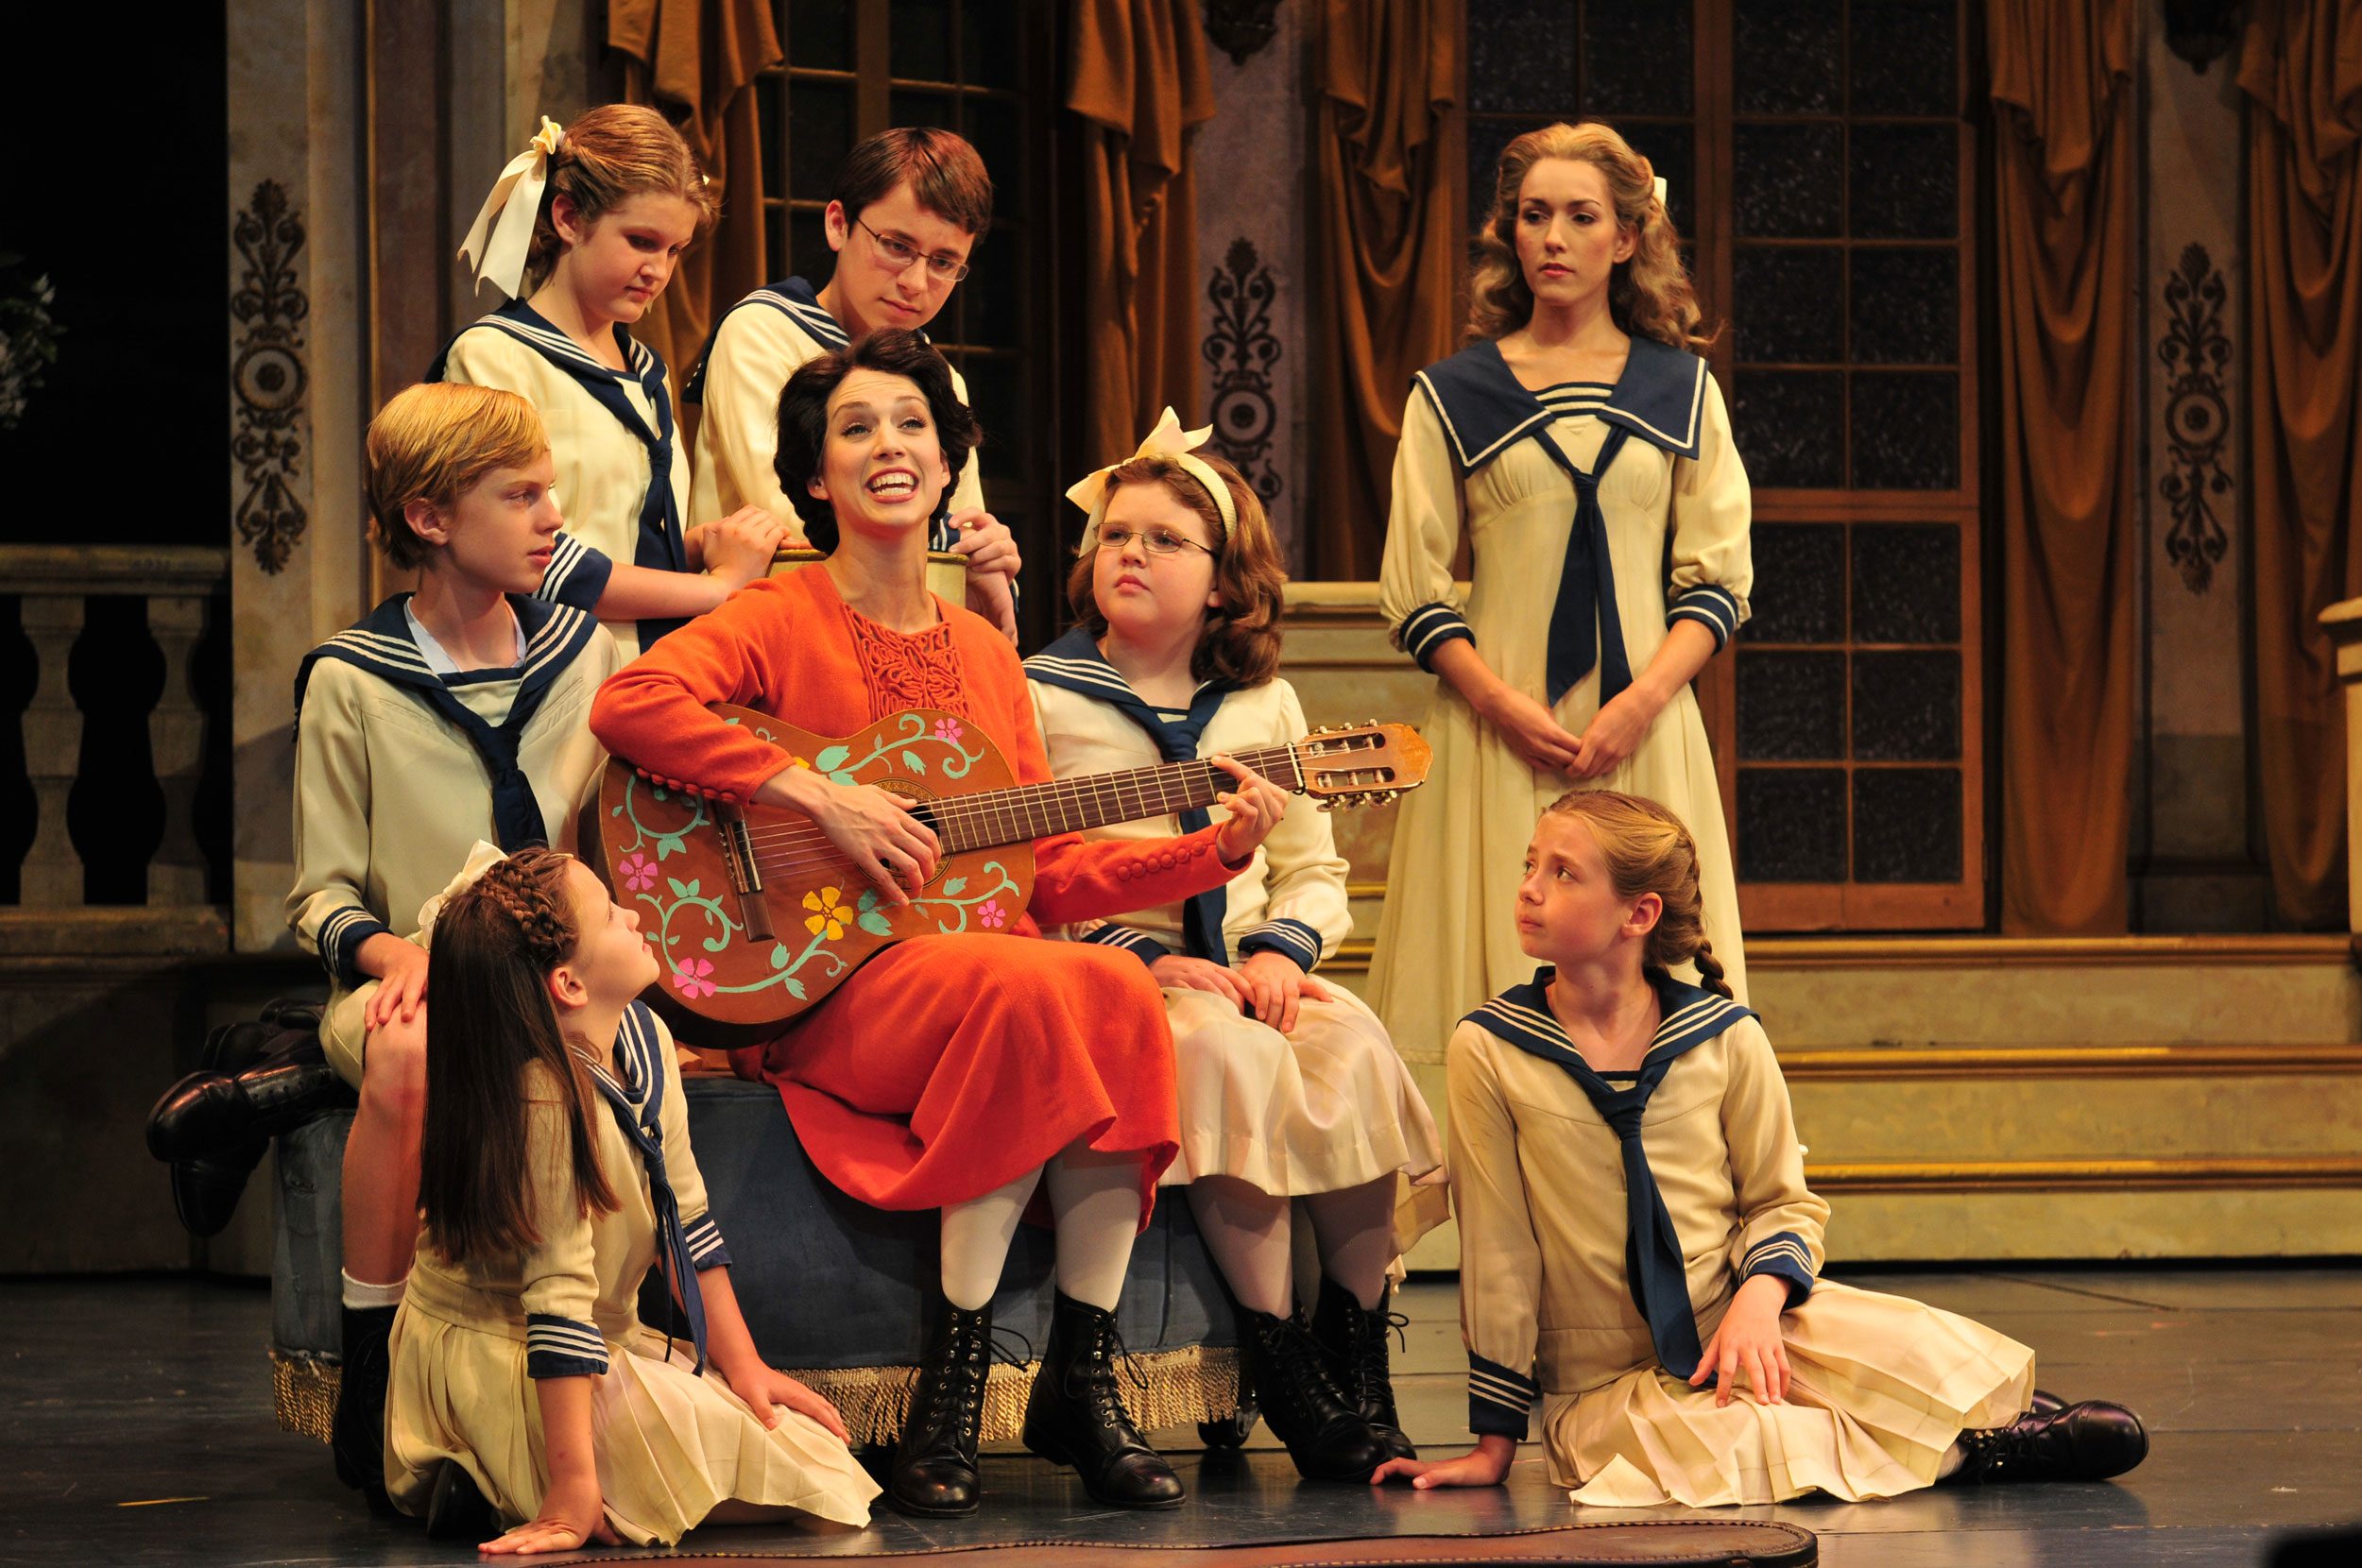 2010_OP_The-Sound-of-Music_Gail-Bennett_as_Maria_with_von-Trapp-Children_guitar_photo-by_Gary-Ng_RGB.jpg